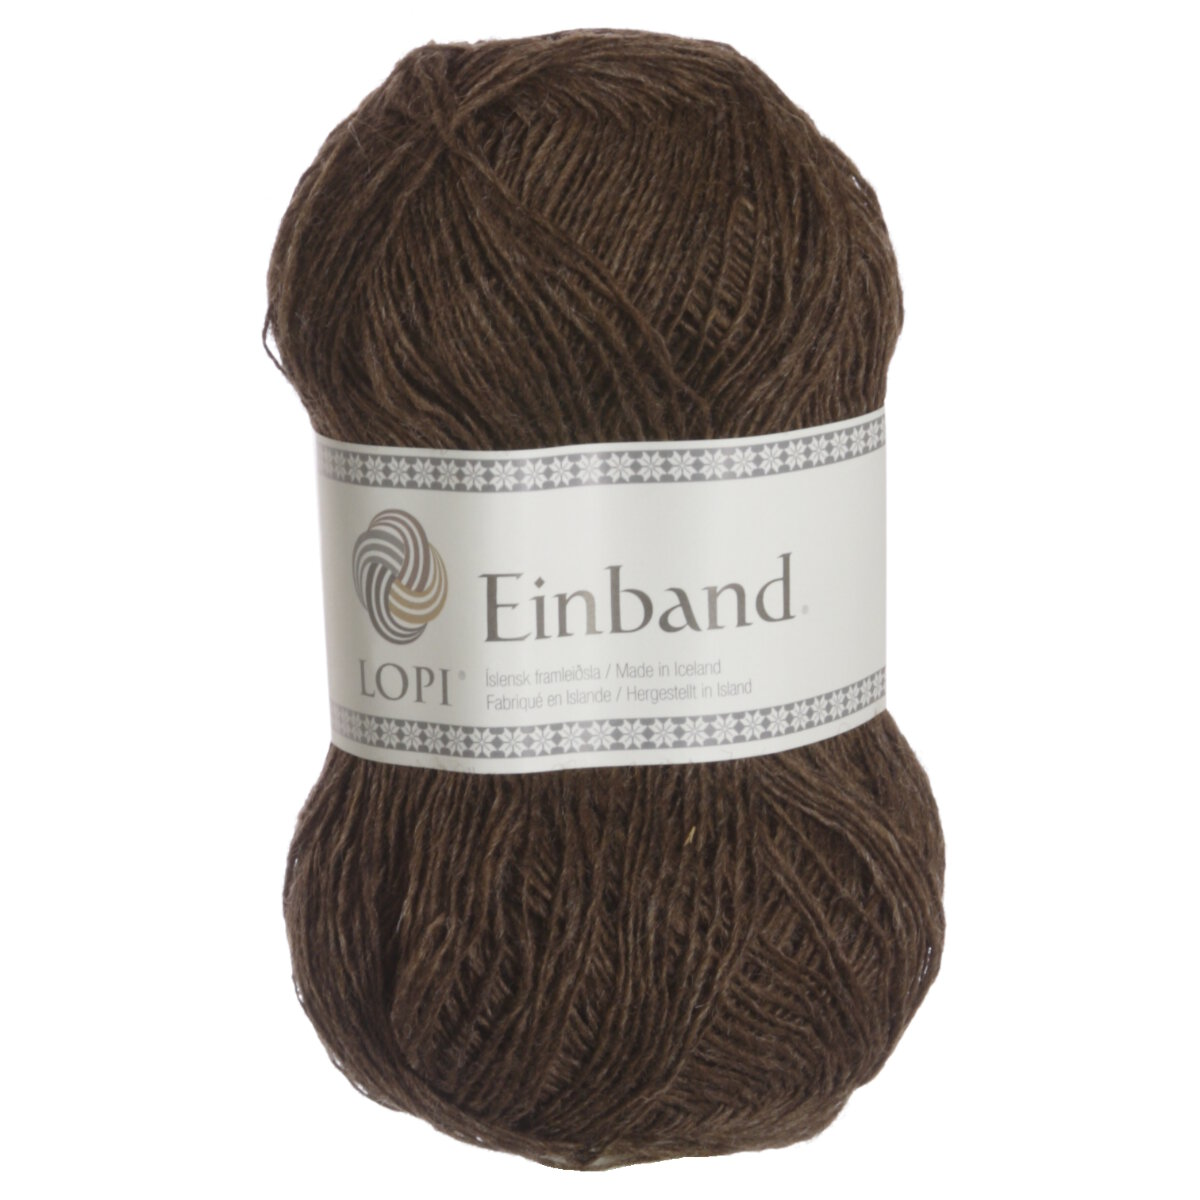 Knitted Balls Pattern : Lopi Einband Yarn - 0853 Brown Reviews at Jimmy Beans Wool